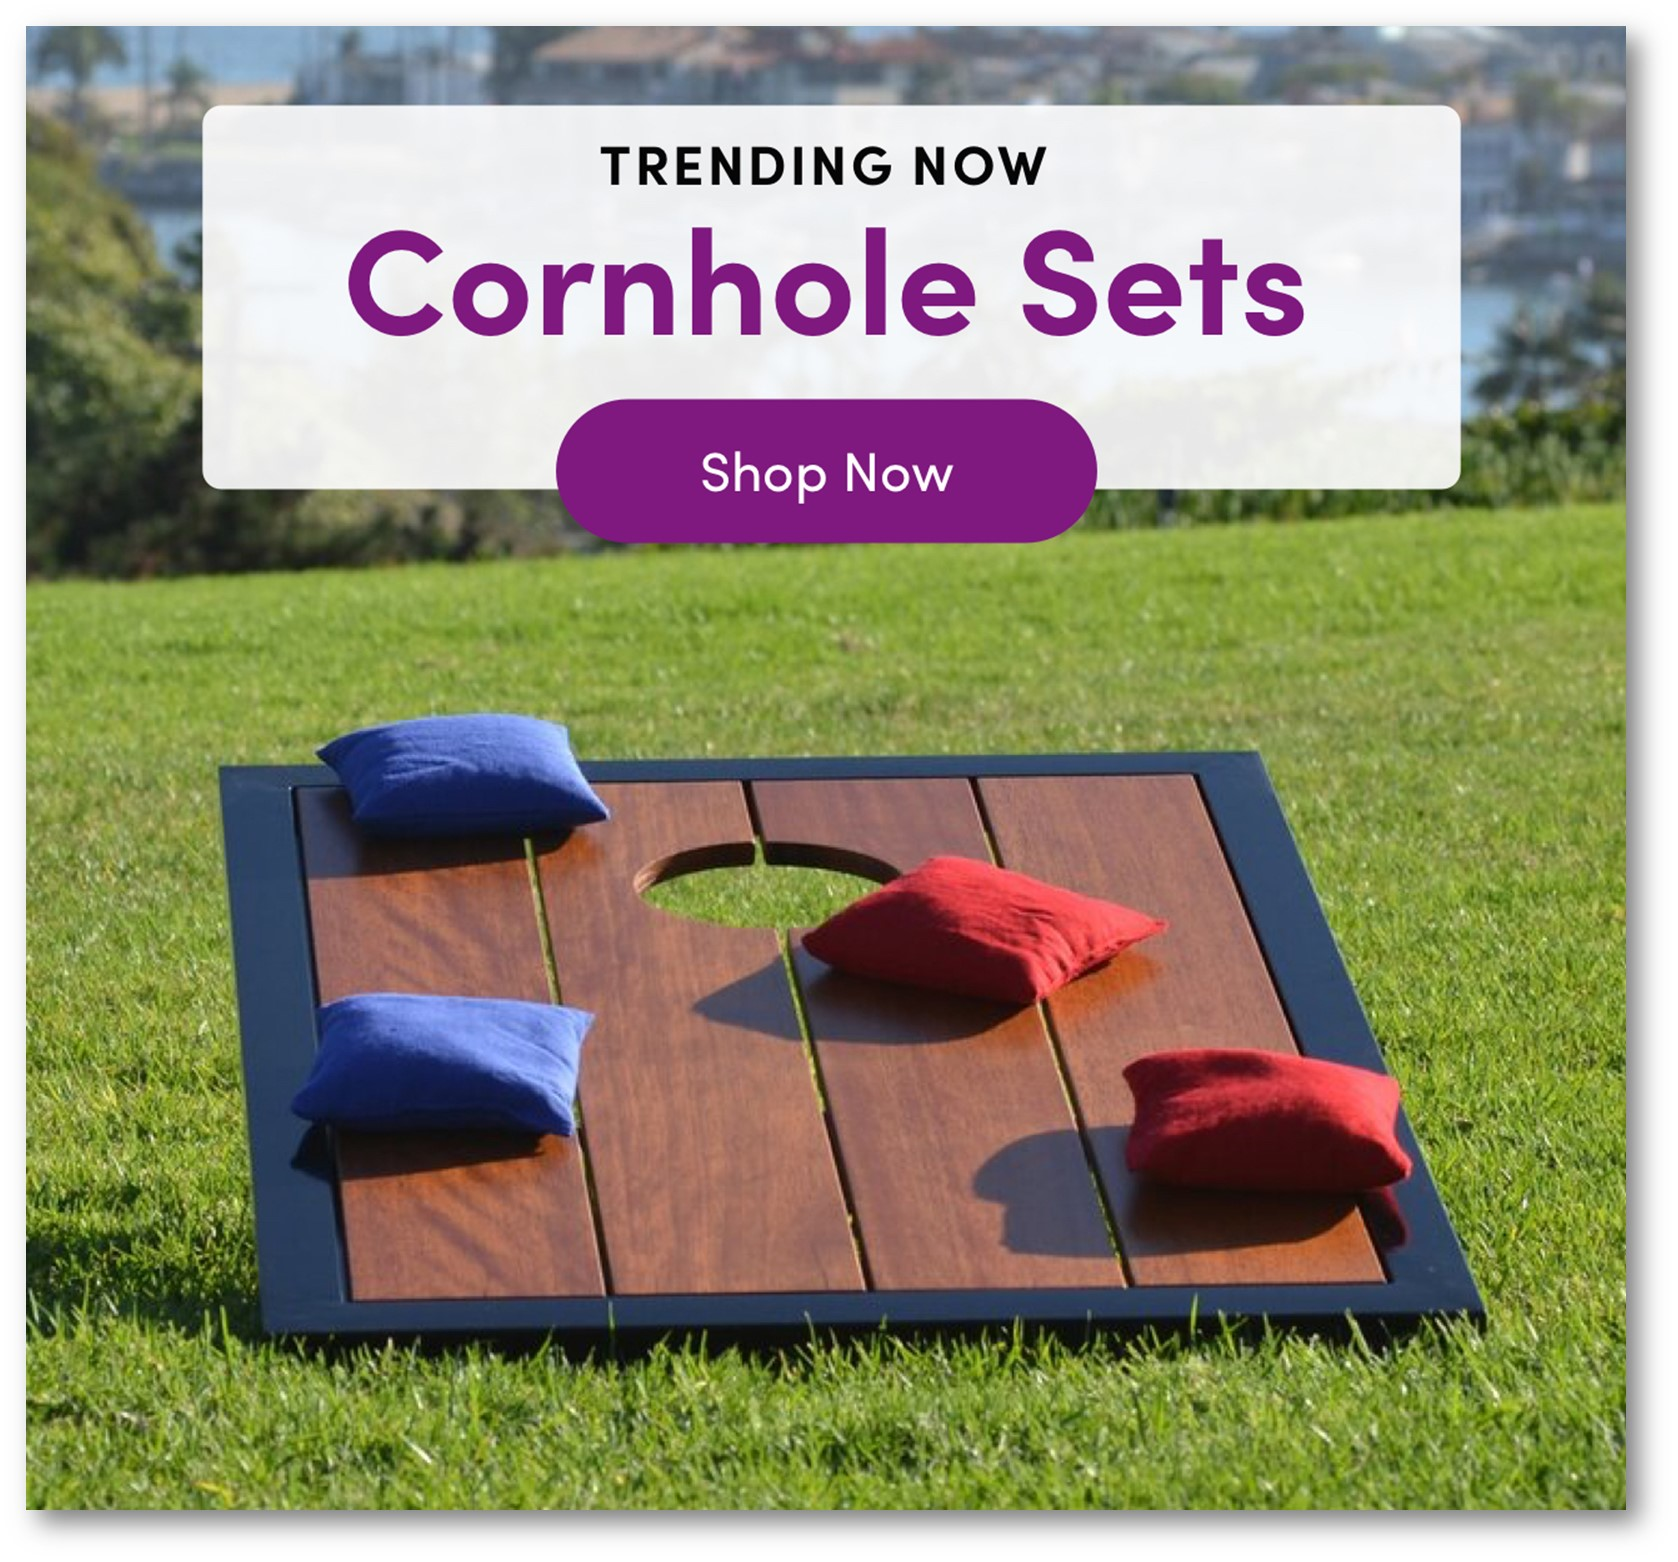 NOW TRENDING CORN HOLE SETS FOR THE MONDERN MAN